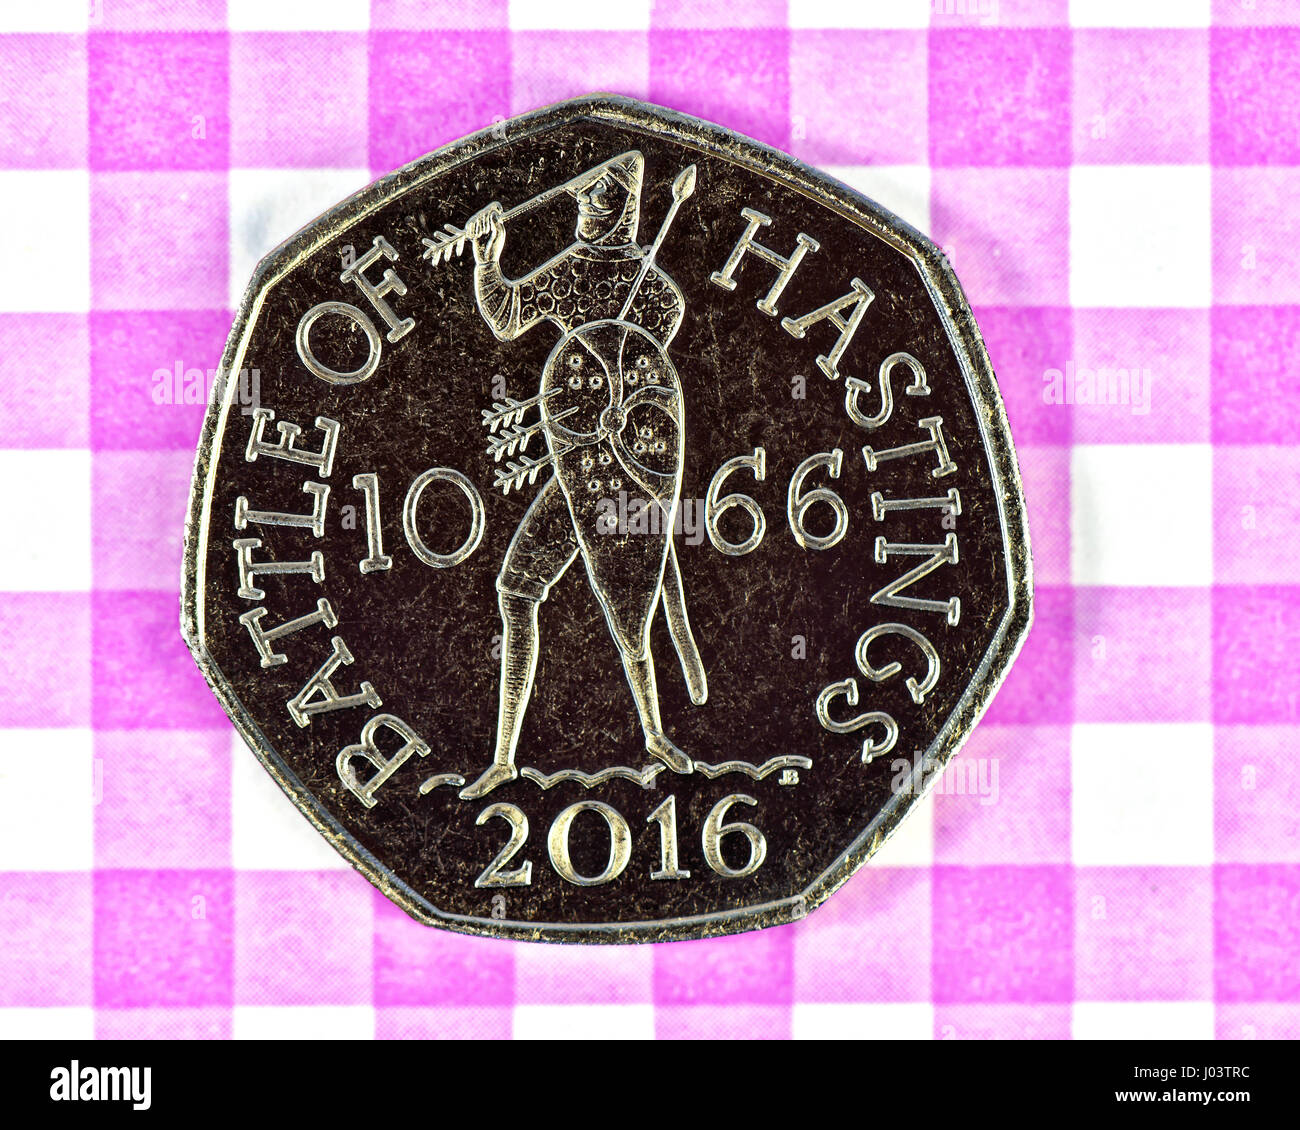 Battle of Hasting 1066 50P piece coin - Stock Image